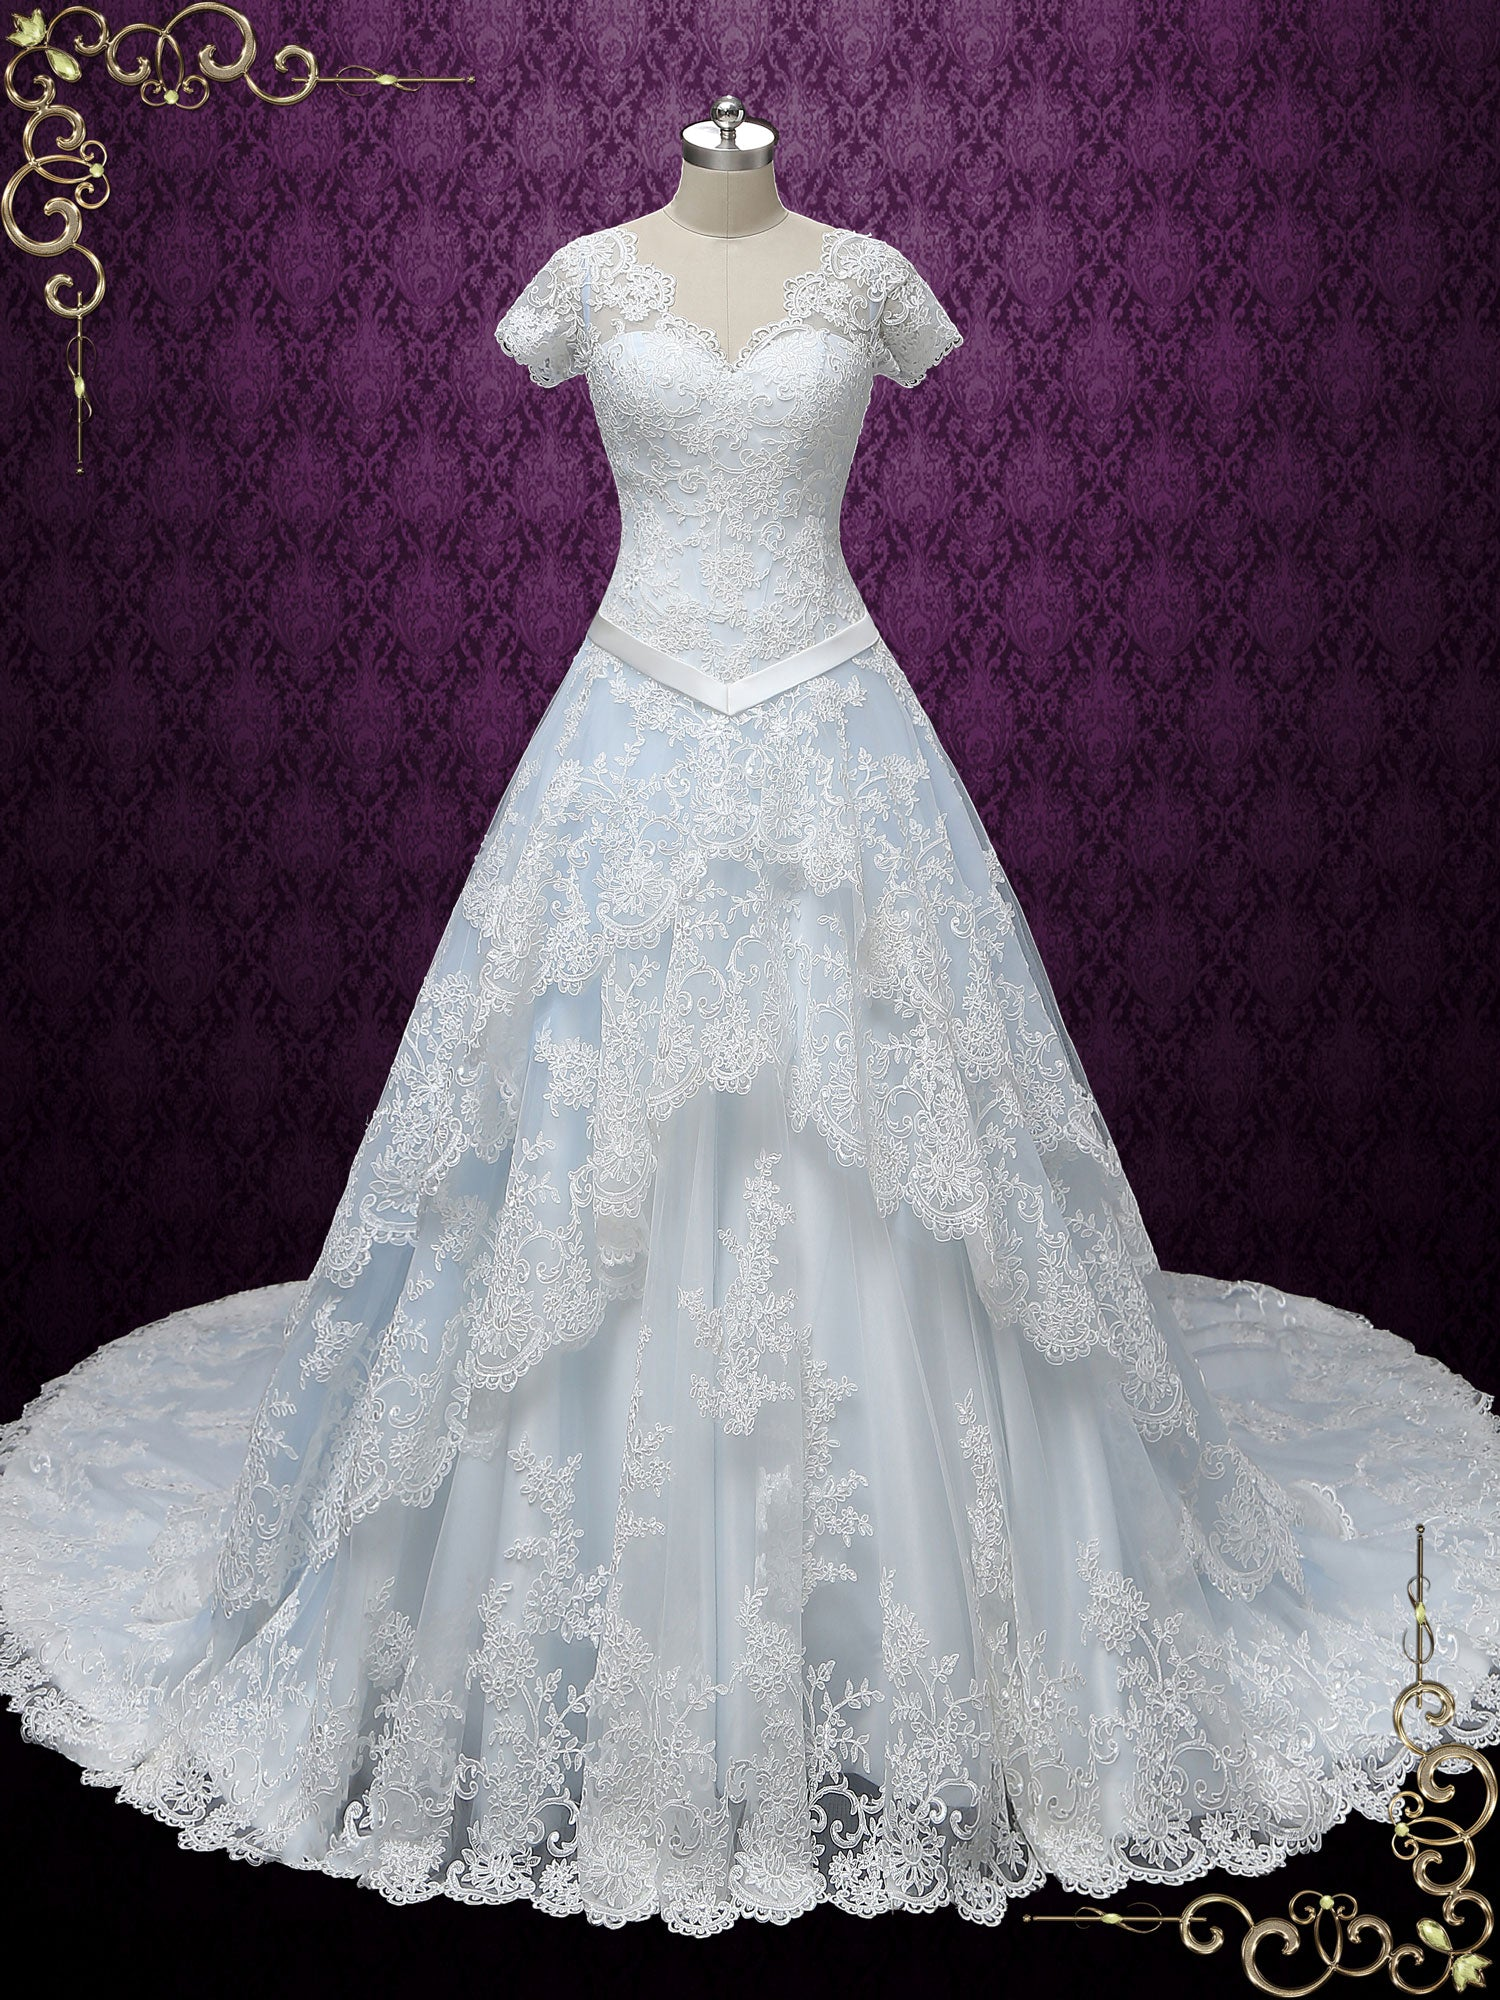 Blue Cinderella Style Princess Wedding Dress | Karina